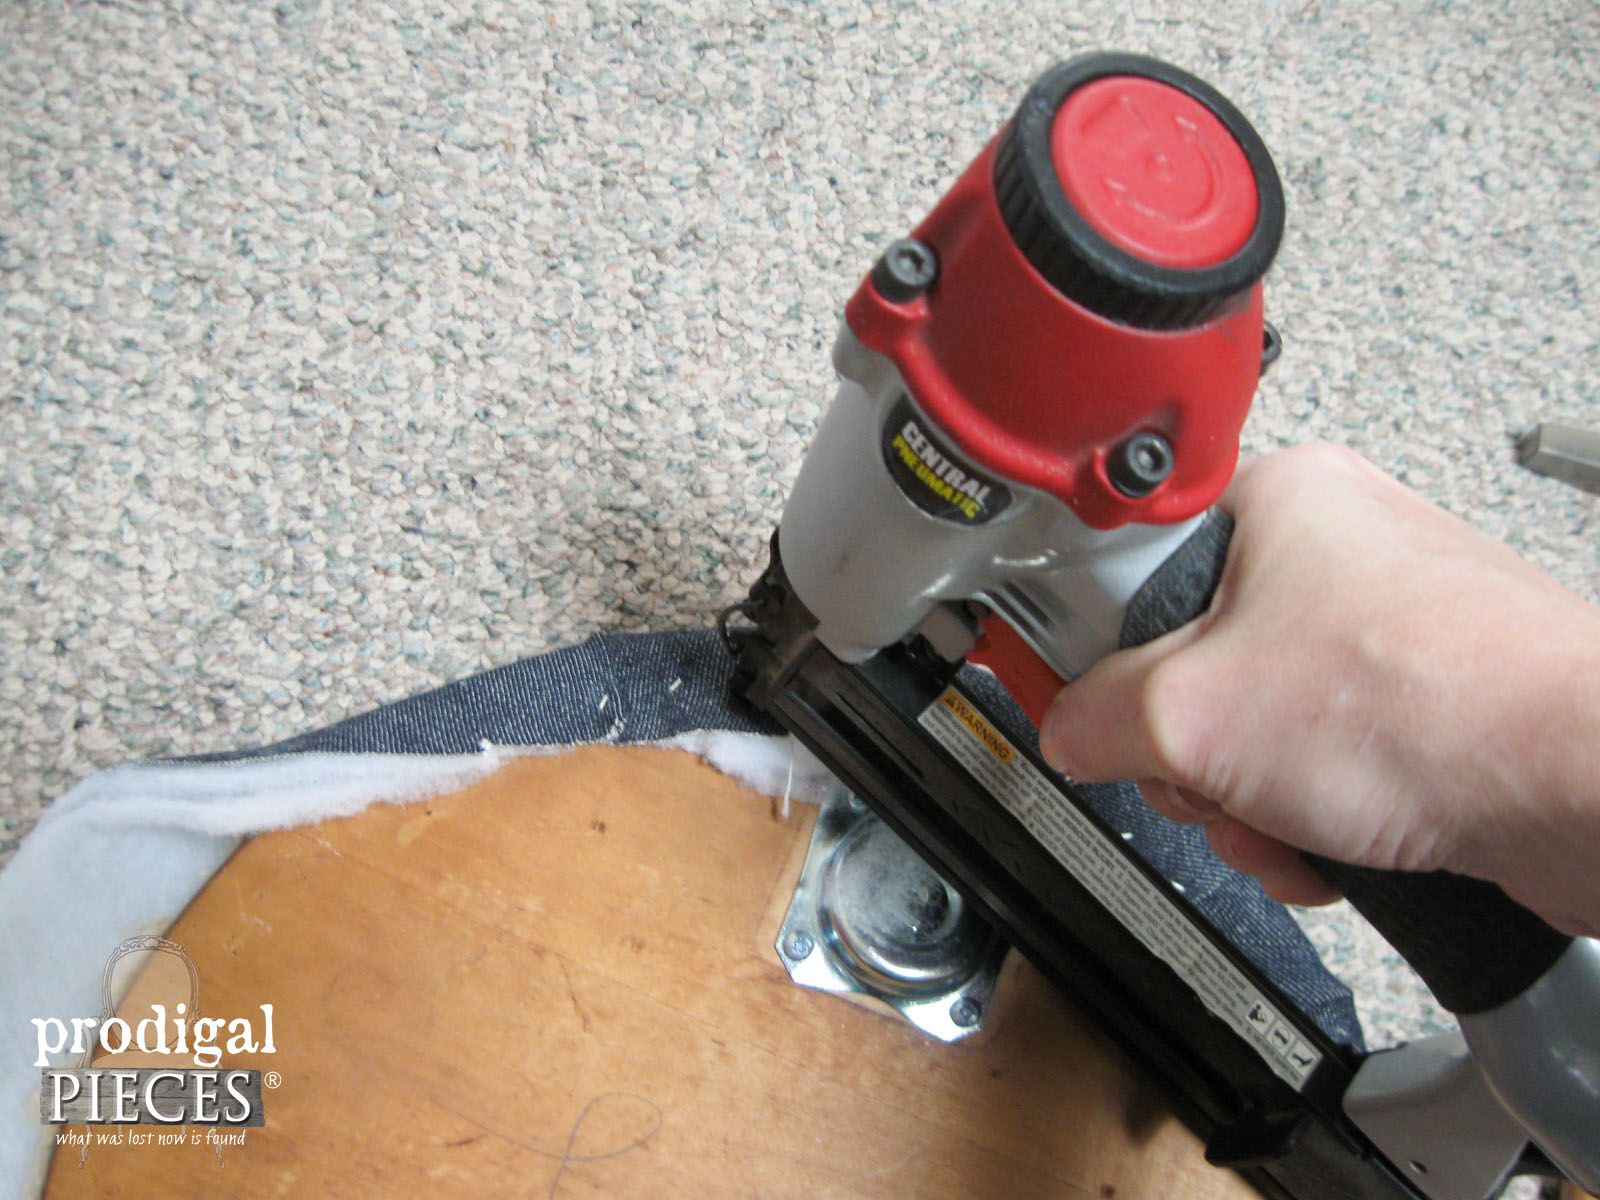 Stapling on Upholstery to Footstool | Prodigal Pieces | www.prodigalpieces.com